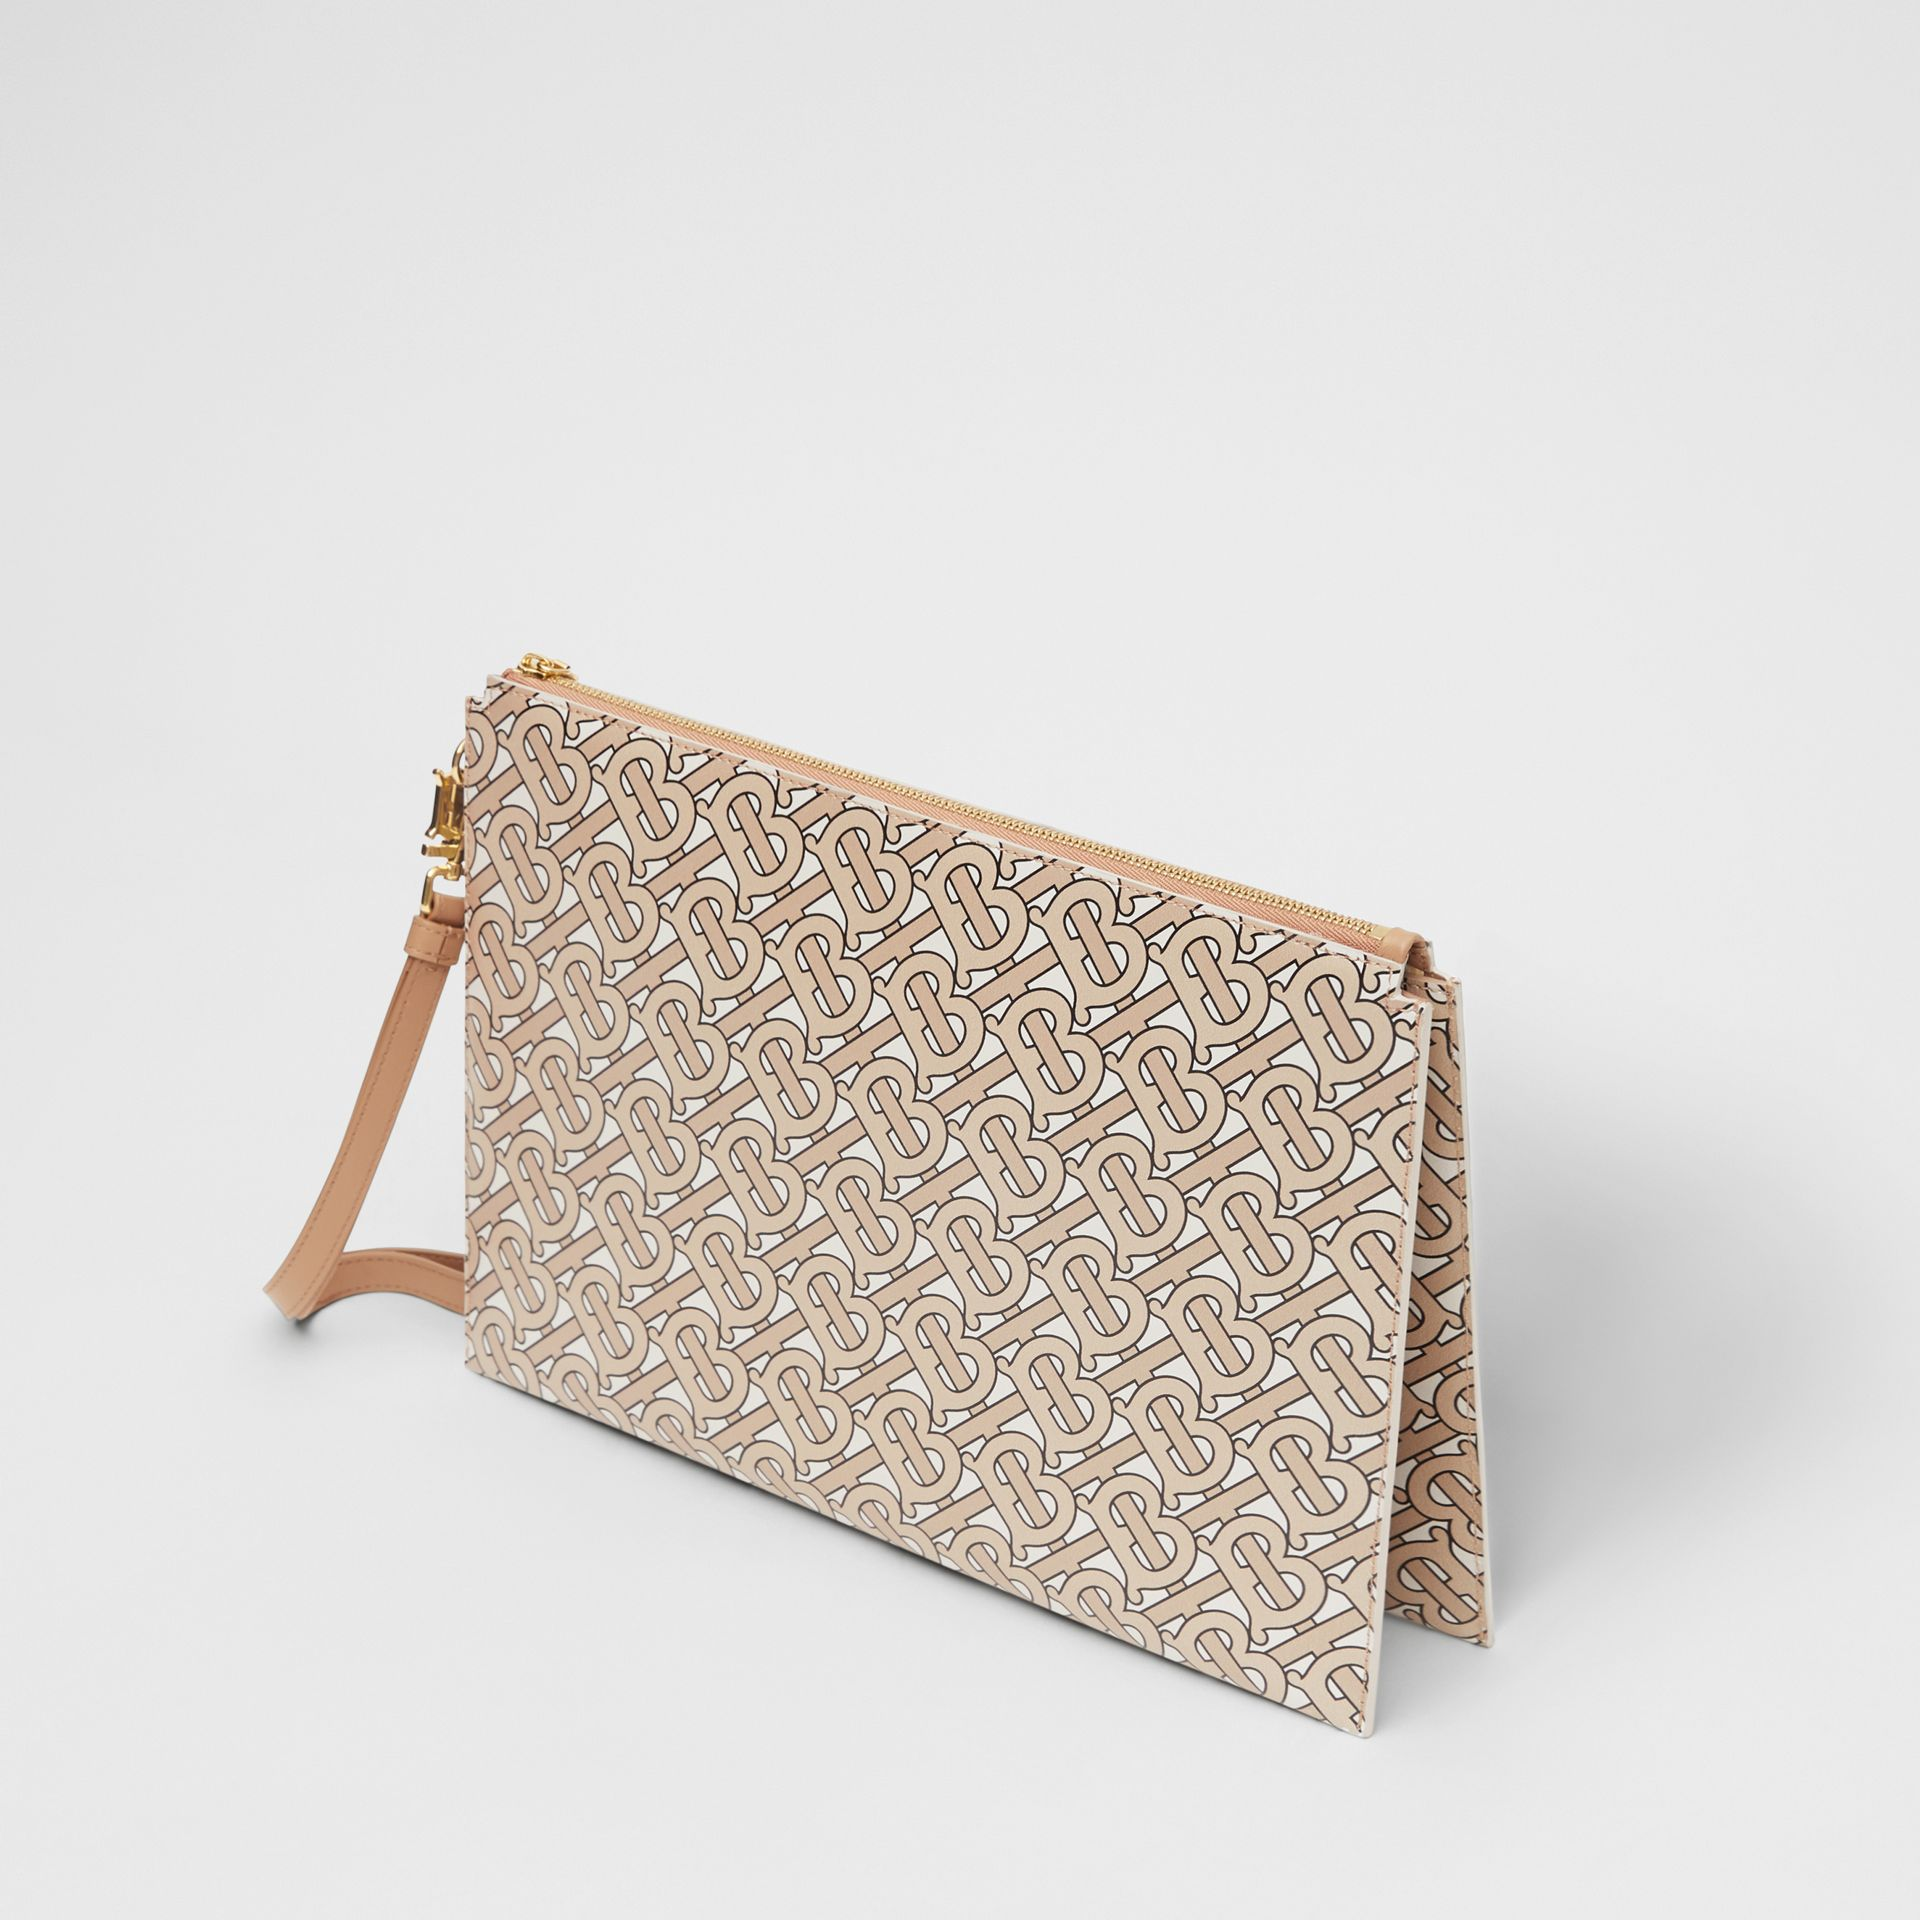 Monogram Print Leather Pouch in Beige - Women | Burberry - gallery image 3